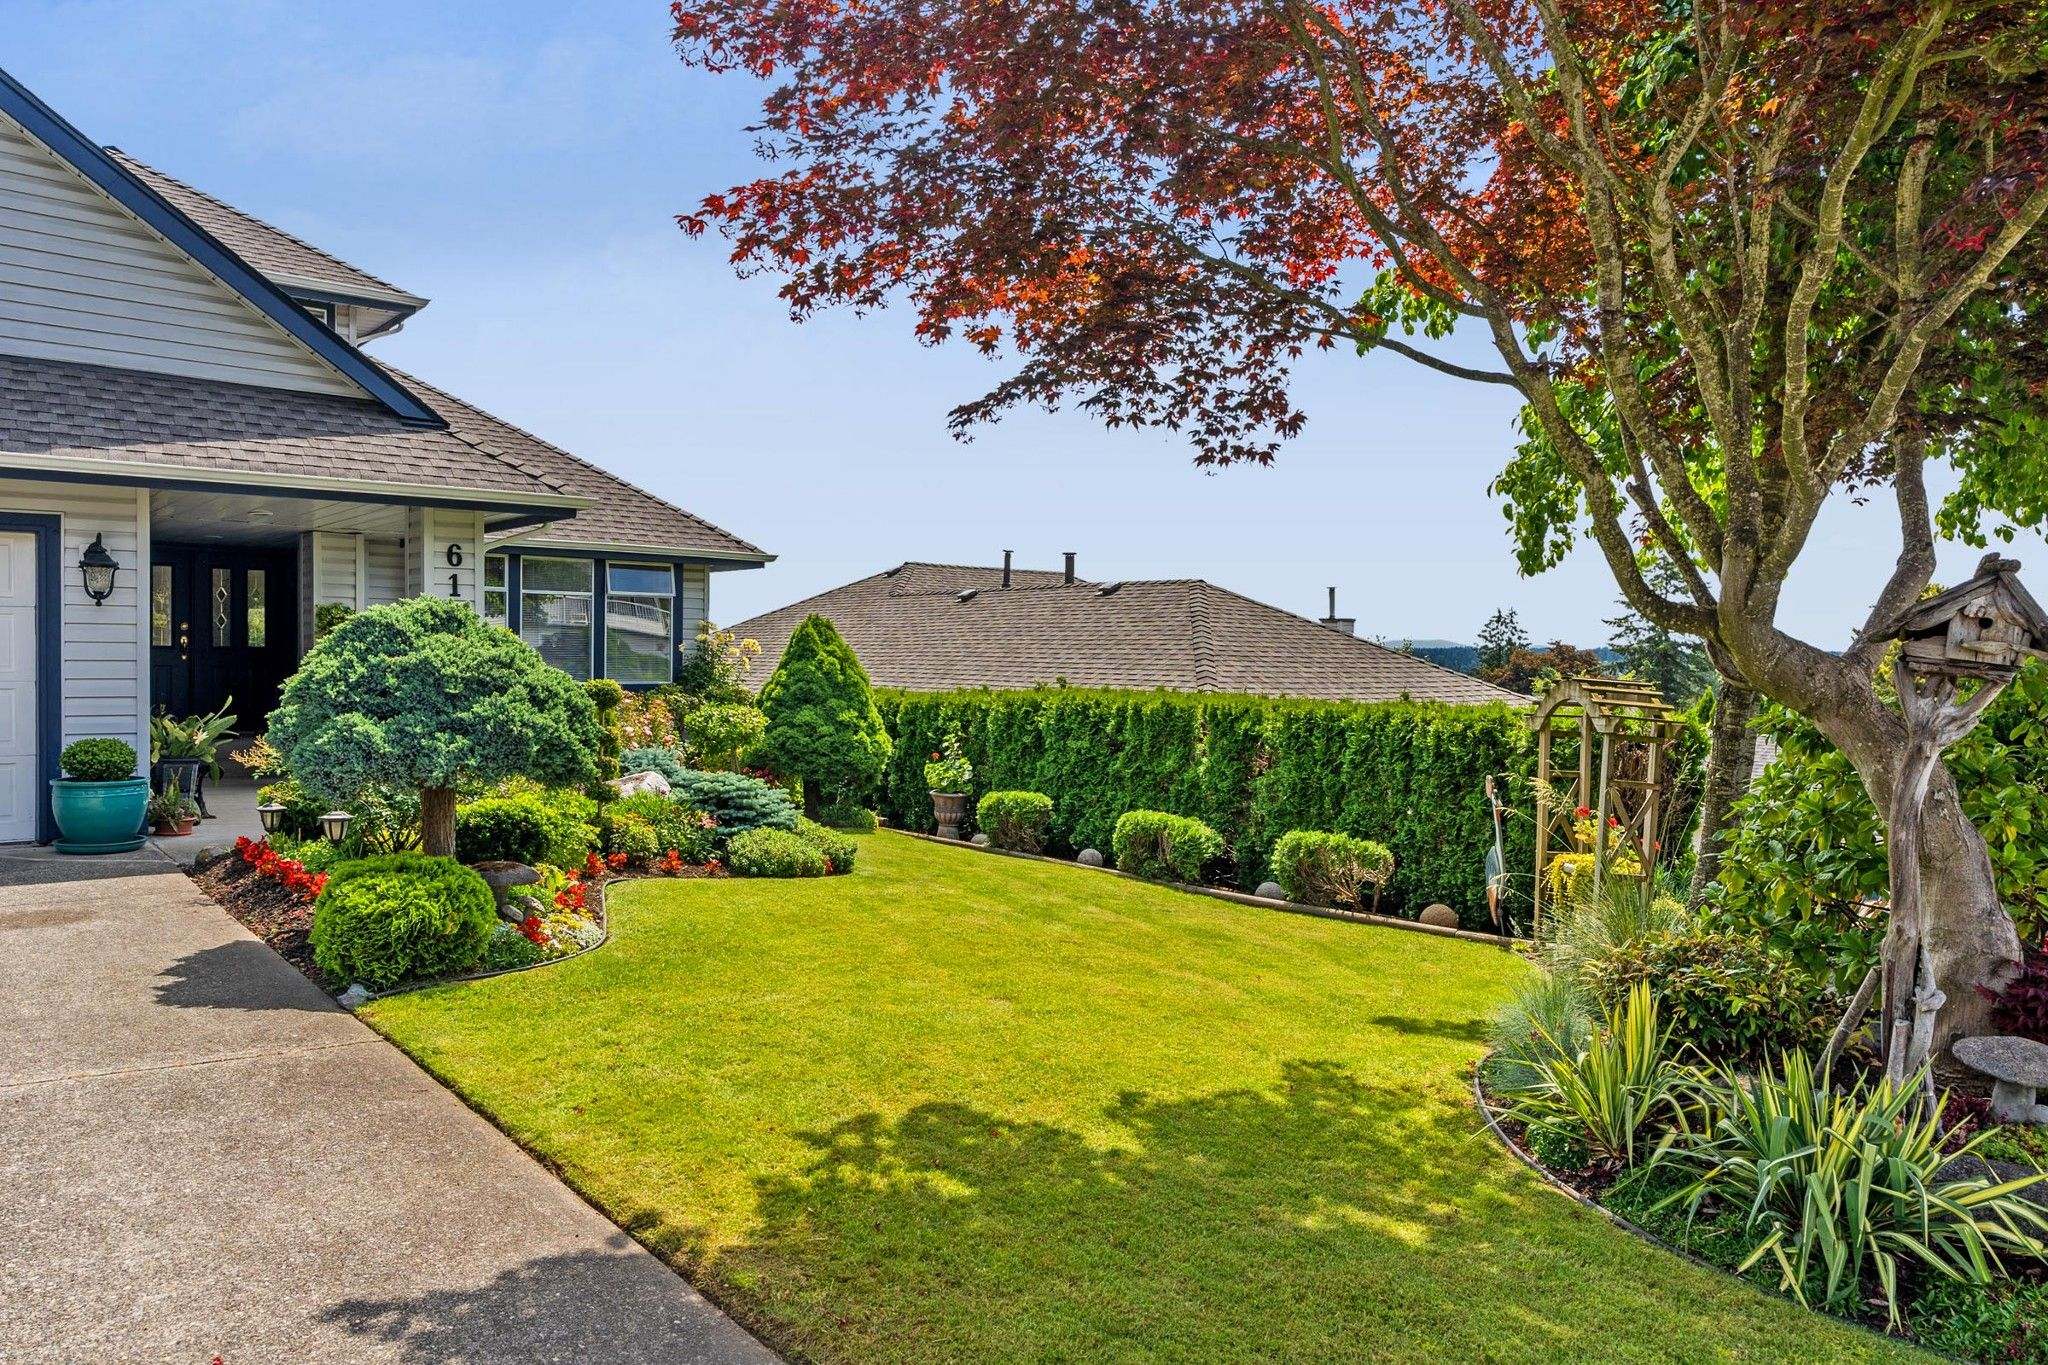 Photo 3: Photos: 6192 191A Street in Surrey: Cloverdale BC House for sale (Cloverdale)  : MLS®# R2279041